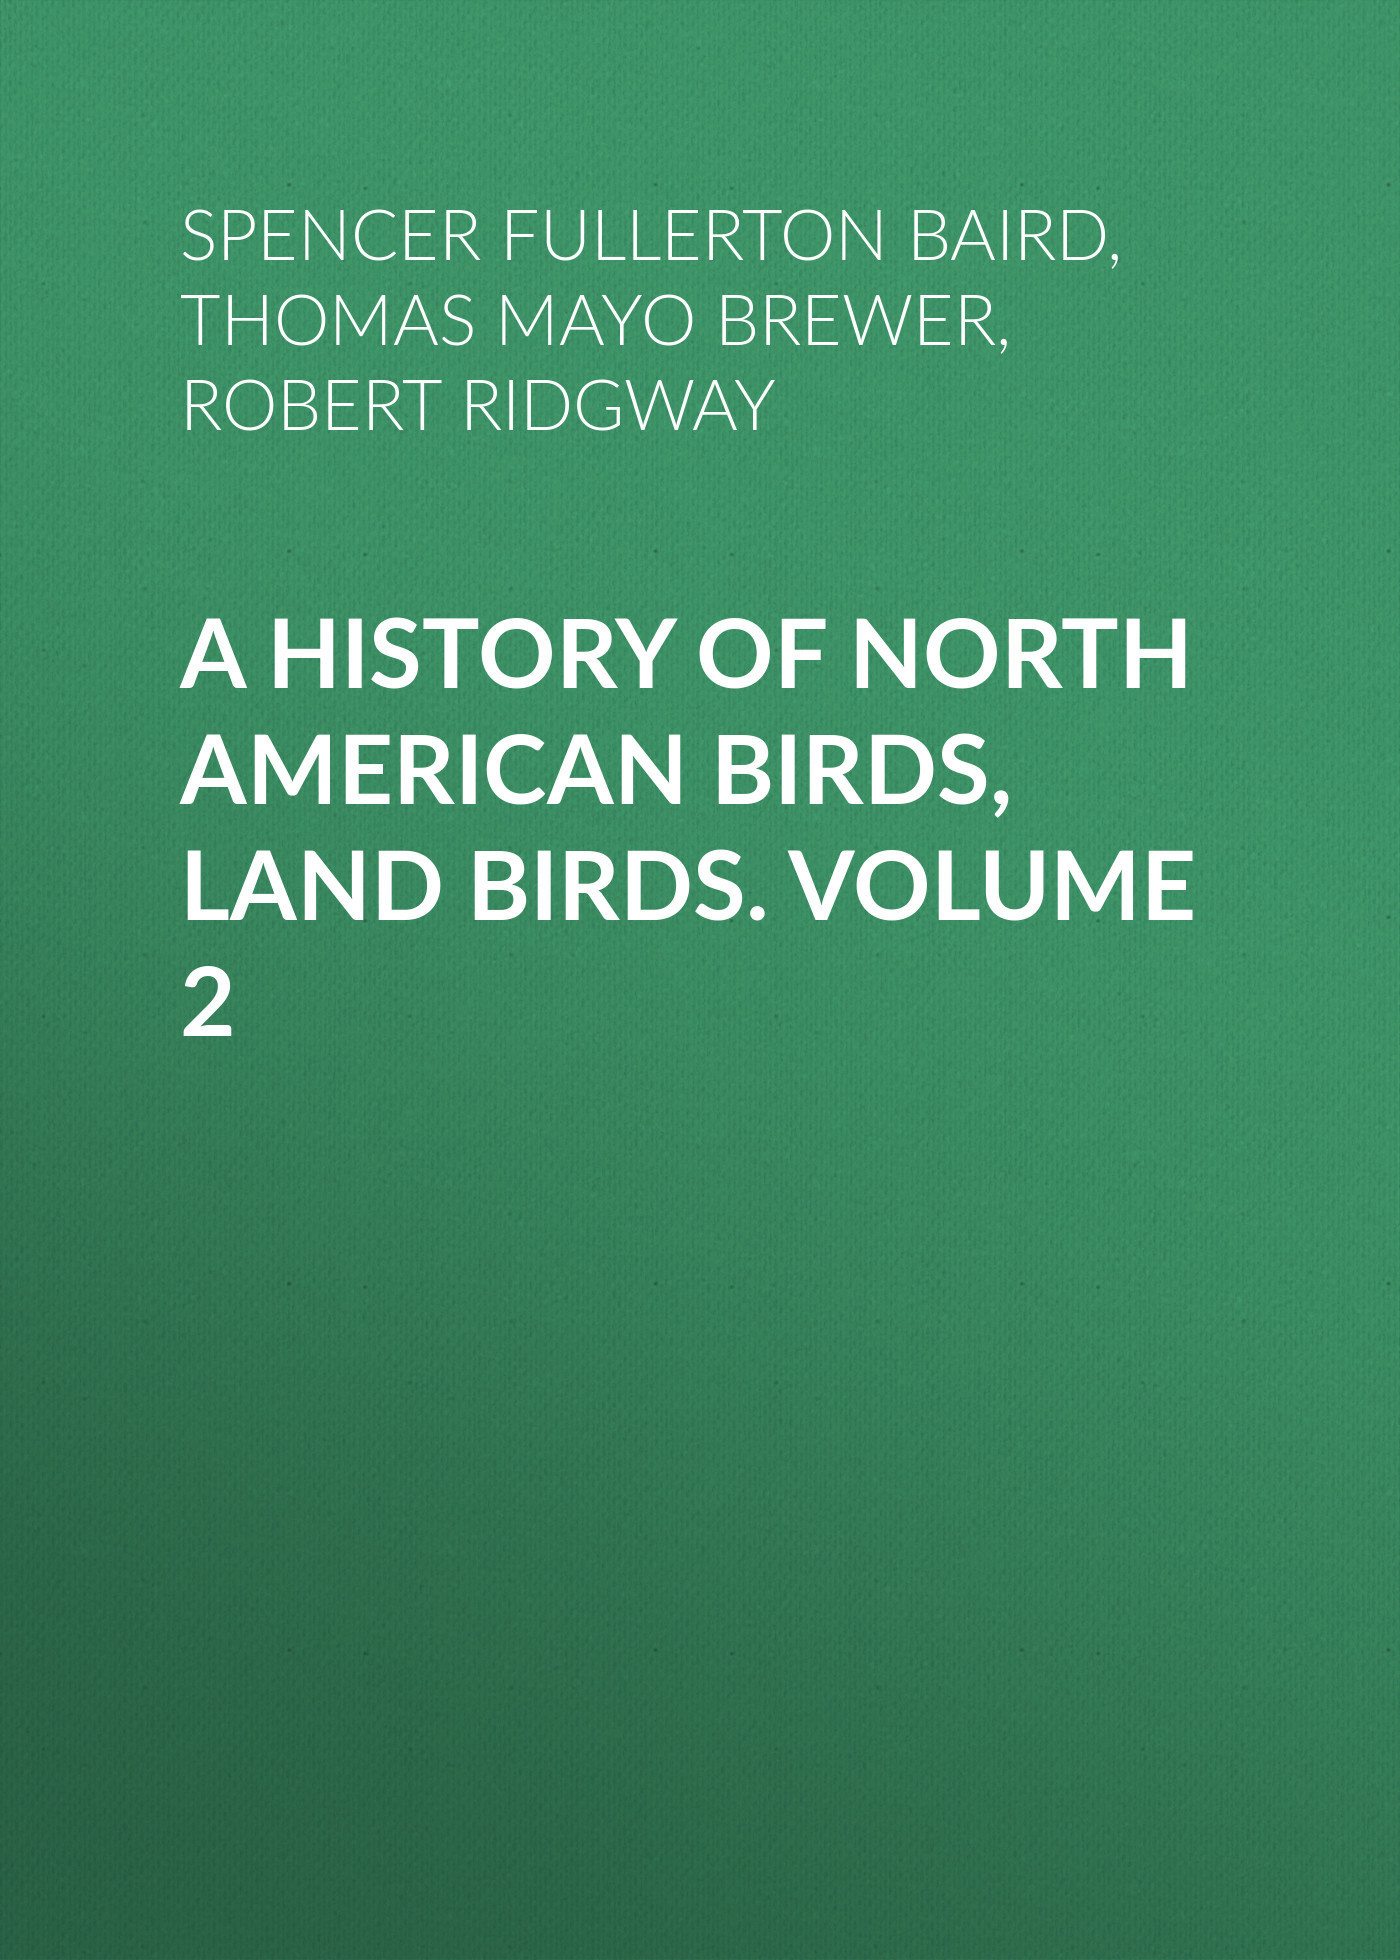 A History of North American Birds, Land Birds. Volume 2